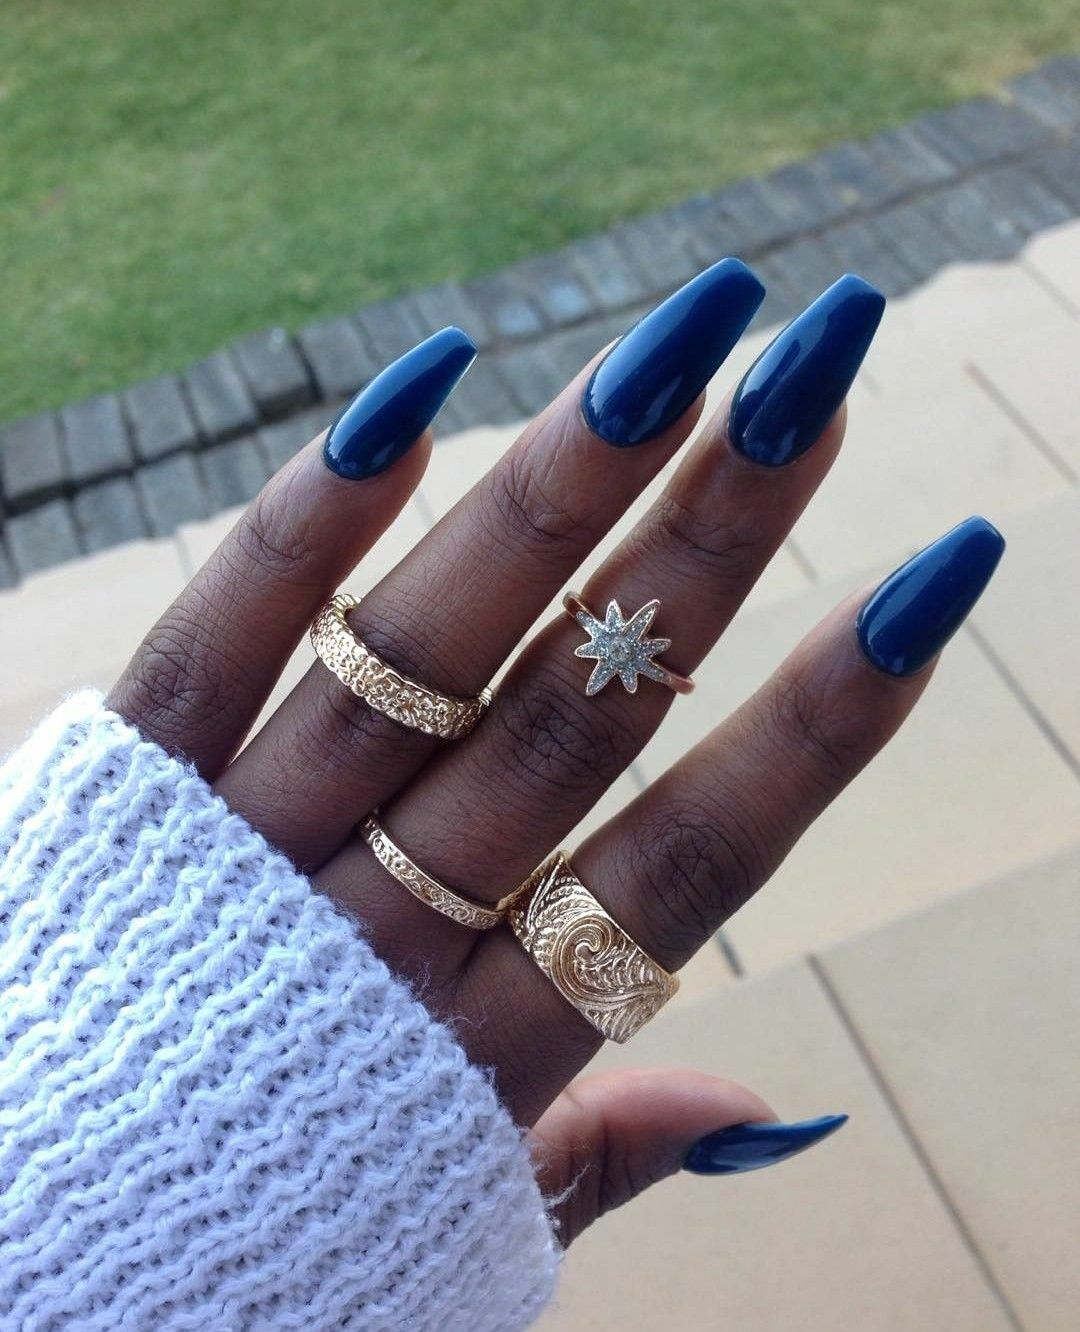 Pinterest The Blackpearl Dark Nails Gel Nails Summer Nails Colors